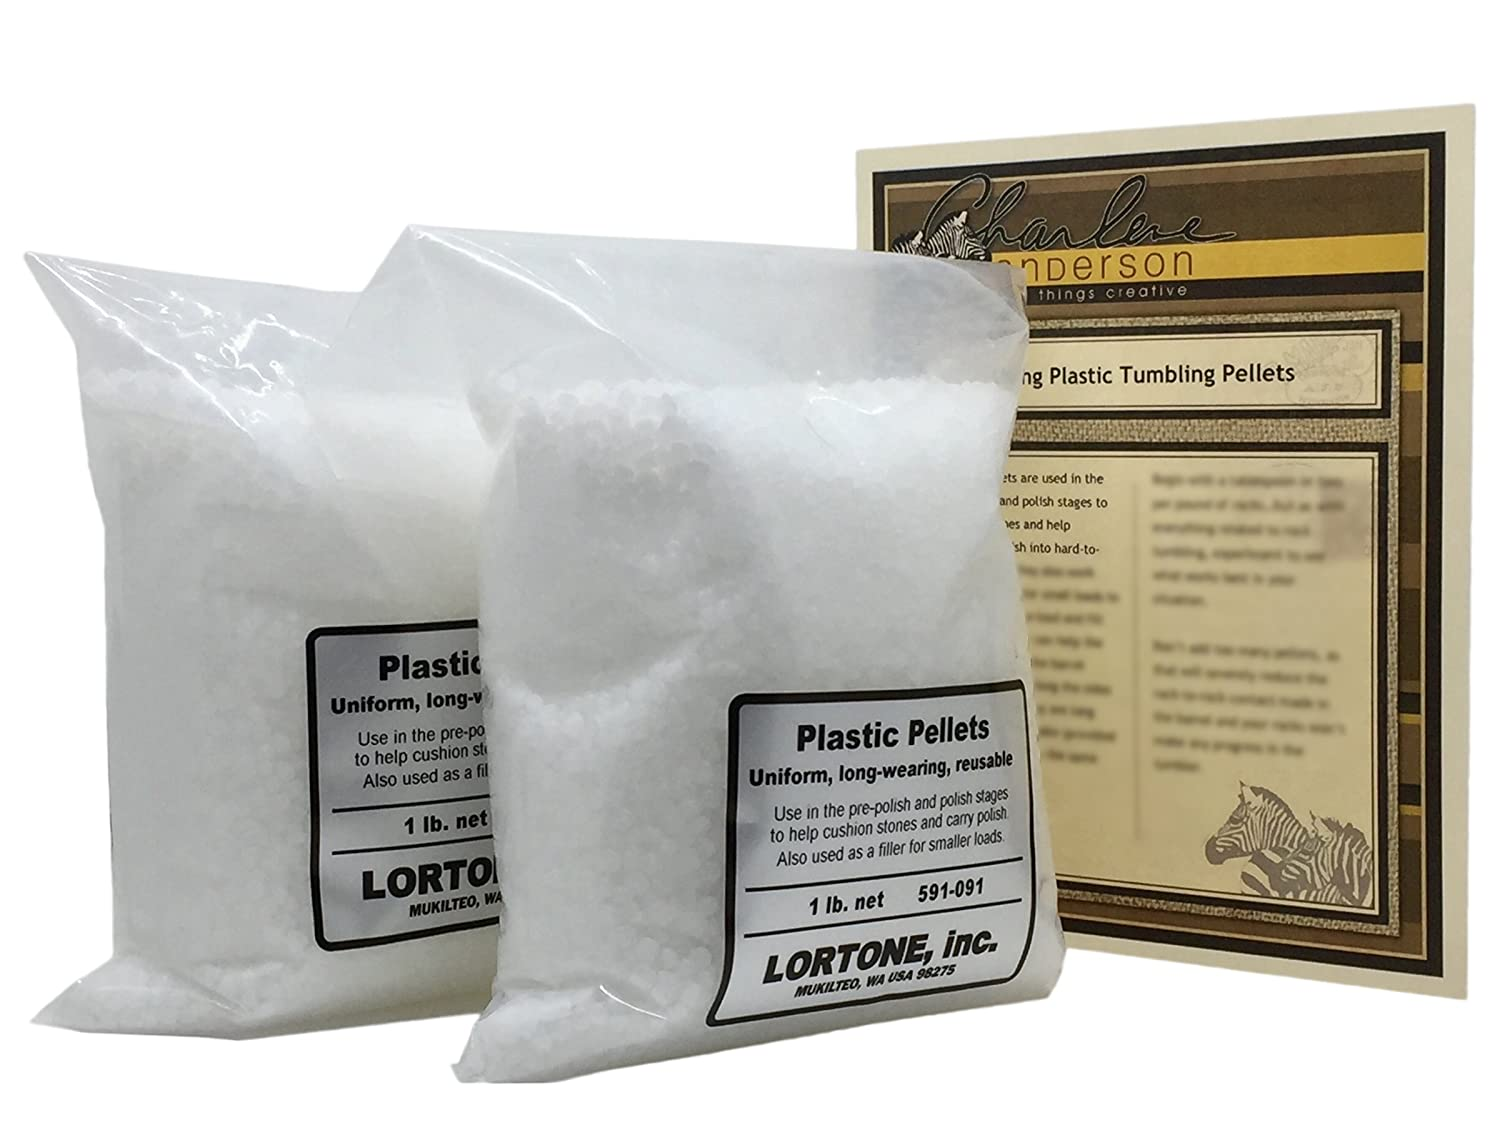 Lortone 591-091 Plastic Pellets for Rock Tumbling & Rock Polishing with Tumbling Article by Jewelry Artist Charlene Anderson (2)